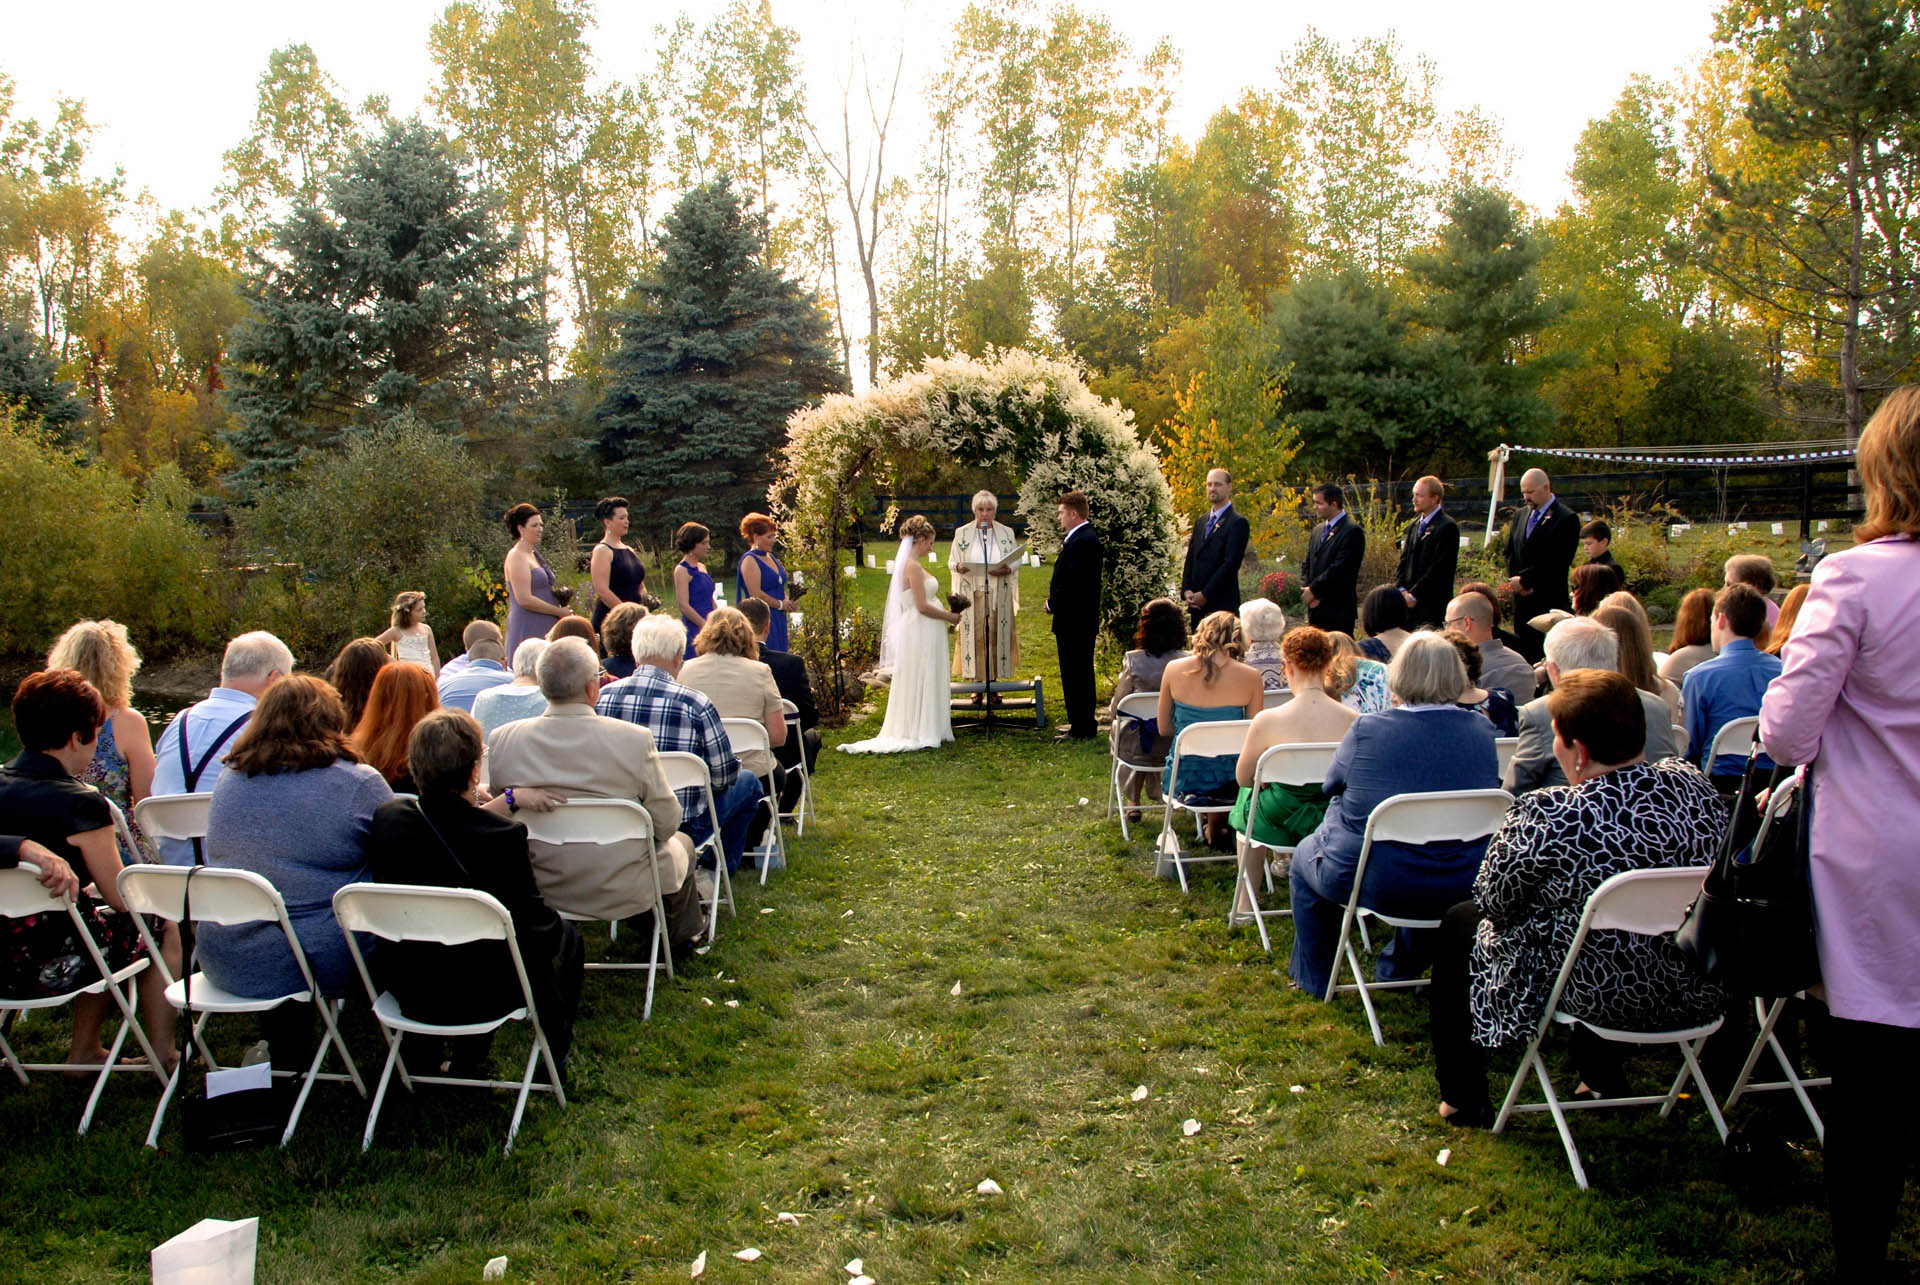 Favorite Michigan backyard wedding photography features photojournalist photos of  and overview of what a nice garden style wedding might look like in metro Detroit, Michigan featuring their lovely backyard garden wedding in fall.